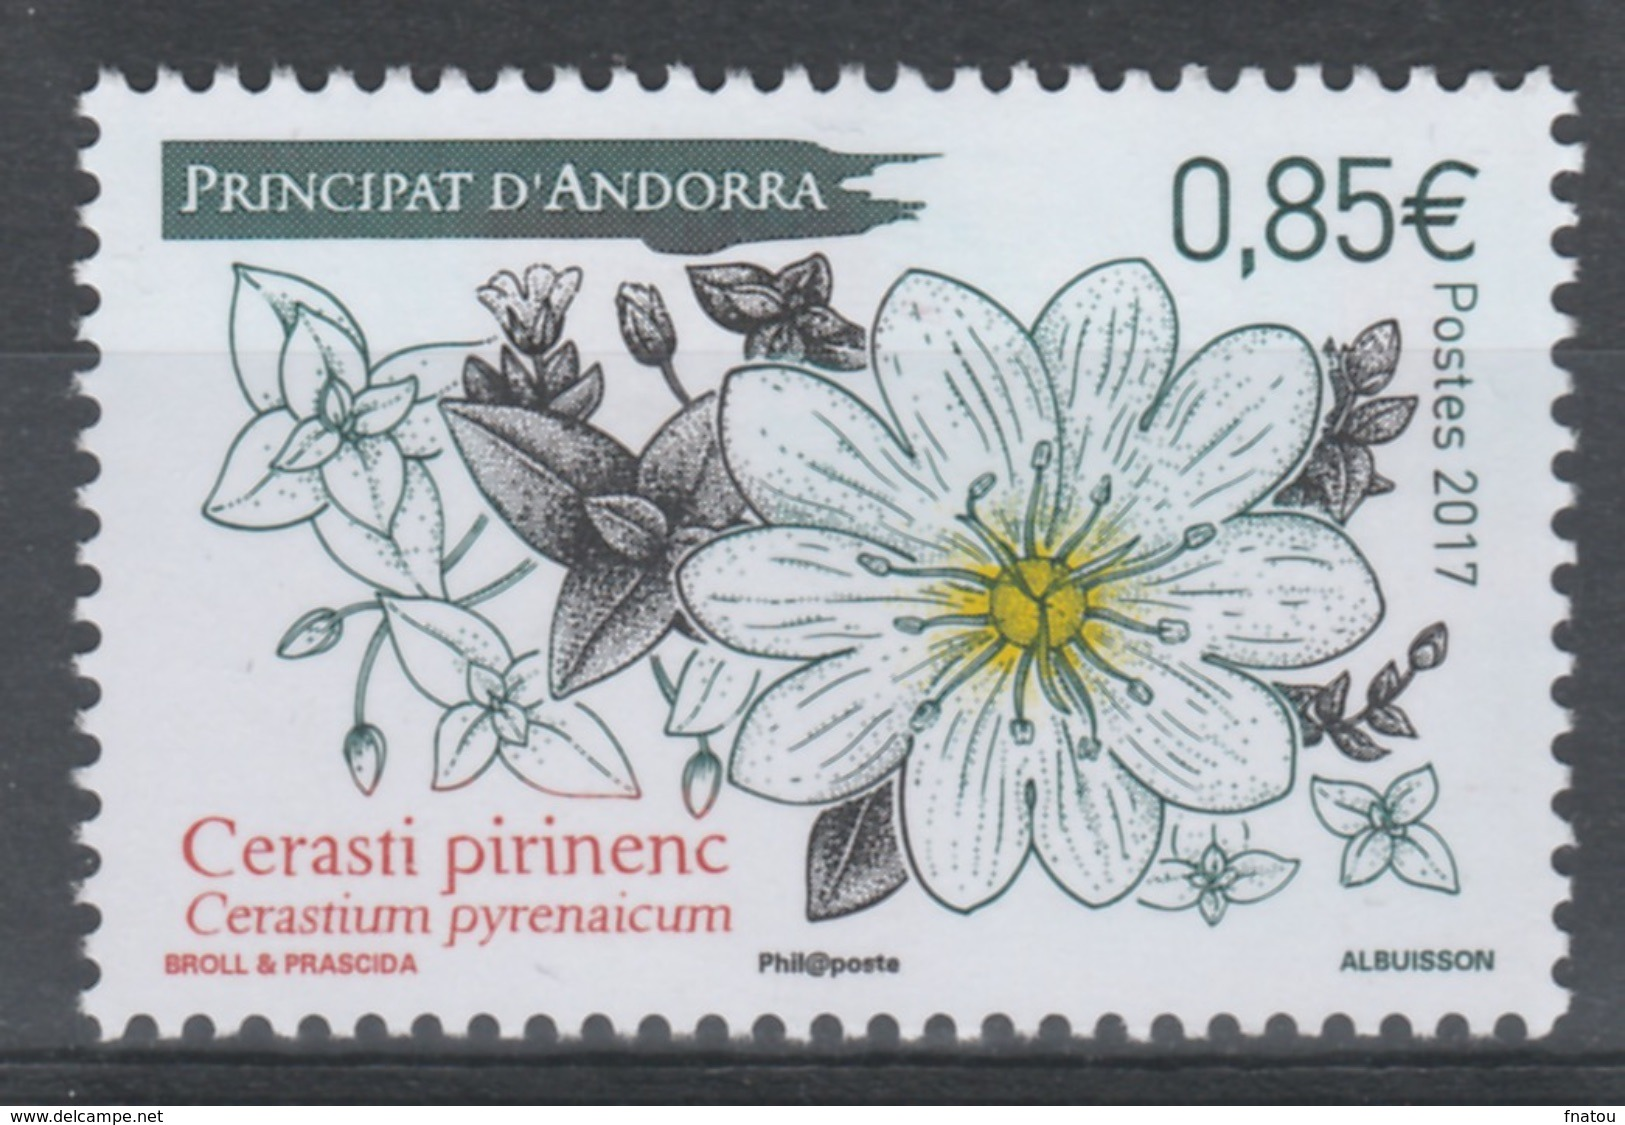 Andorra (French Adm.), Plant, Mouse-ear Chickweed, Cerastium, 2017, MNH VF - Unused Stamps